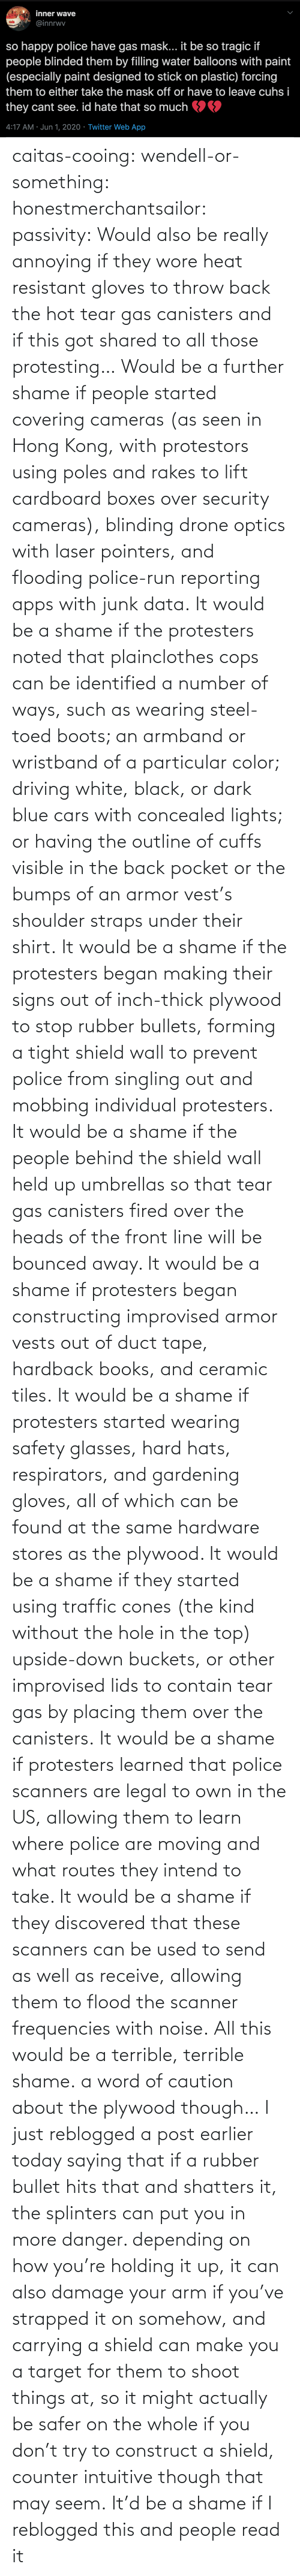 Gardening: caitas-cooing:  wendell-or-something: honestmerchantsailor:  passivity: Would also be really annoying if they wore heat resistant gloves to throw back the hot tear gas canisters and if this got shared to all those protesting… Would be a further shame if people started covering cameras (as seen in Hong Kong, with protestors using poles and rakes to lift cardboard boxes over security cameras), blinding drone optics with laser pointers, and flooding police-run reporting apps with junk data. It would be a shame if the protesters noted that plainclothes cops can be identified a number of ways, such as wearing steel-toed boots; an armband or wristband of a particular color; driving white, black, or dark blue cars with concealed lights; or having the outline of cuffs visible in the back pocket or the bumps of an armor vest's shoulder straps under their shirt. It would be a shame if the protesters began making their signs out of inch-thick plywood to stop rubber bullets, forming a tight shield wall to prevent police from singling out and mobbing individual protesters. It would be a shame if the people behind the shield wall held up umbrellas so that tear gas canisters fired over the heads of the front line will be bounced away. It would be a shame if protesters began constructing improvised armor vests out of duct tape, hardback books, and ceramic tiles. It would be a shame if protesters started wearing safety glasses, hard hats, respirators, and gardening gloves, all of which can be found at the same hardware stores as the plywood. It would be a shame if they started using traffic cones (the kind without the hole in the top) upside-down buckets, or other improvised lids to contain tear gas by placing them over the canisters. It would be a shame if protesters learned that police scanners are legal to own in the US, allowing them to learn where police are moving and what routes they intend to take. It would be a shame if they discovered that these scanners can be used to send as well as receive, allowing them to flood the scanner frequencies with noise. All this would be a terrible, terrible shame.    a word of caution about the plywood though… I just reblogged a post earlier today saying that if a rubber bullet hits that and shatters it, the splinters can put you in more danger. depending on how you're holding it up, it can also damage your arm if you've strapped it on somehow, and carrying a shield can make you a target for them to shoot things at, so it might actually be safer on the whole if you don't try to construct a shield, counter intuitive though that may seem.    It'd be a shame if I reblogged this and people read it